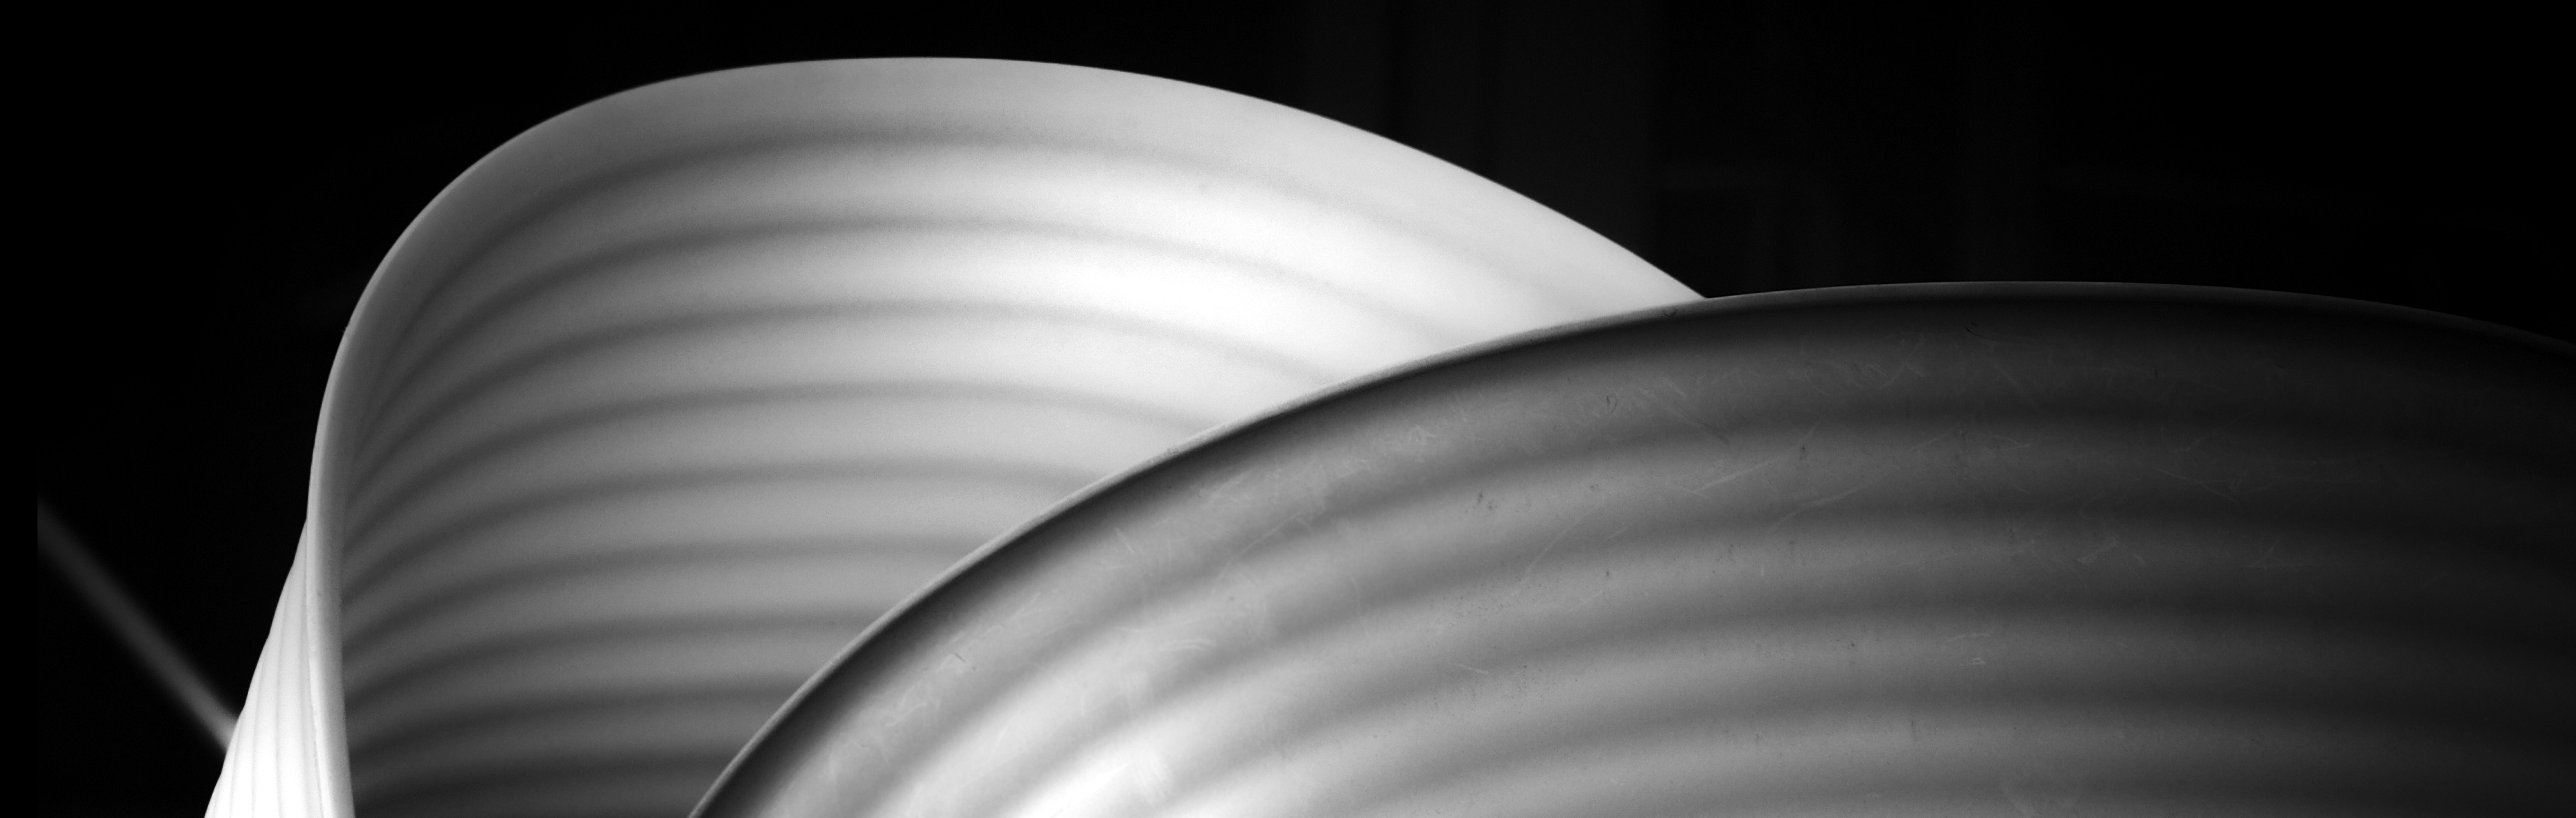 Photography_FROM-DARKNESS-INTO-DIFFERENT-LIGHT-BW